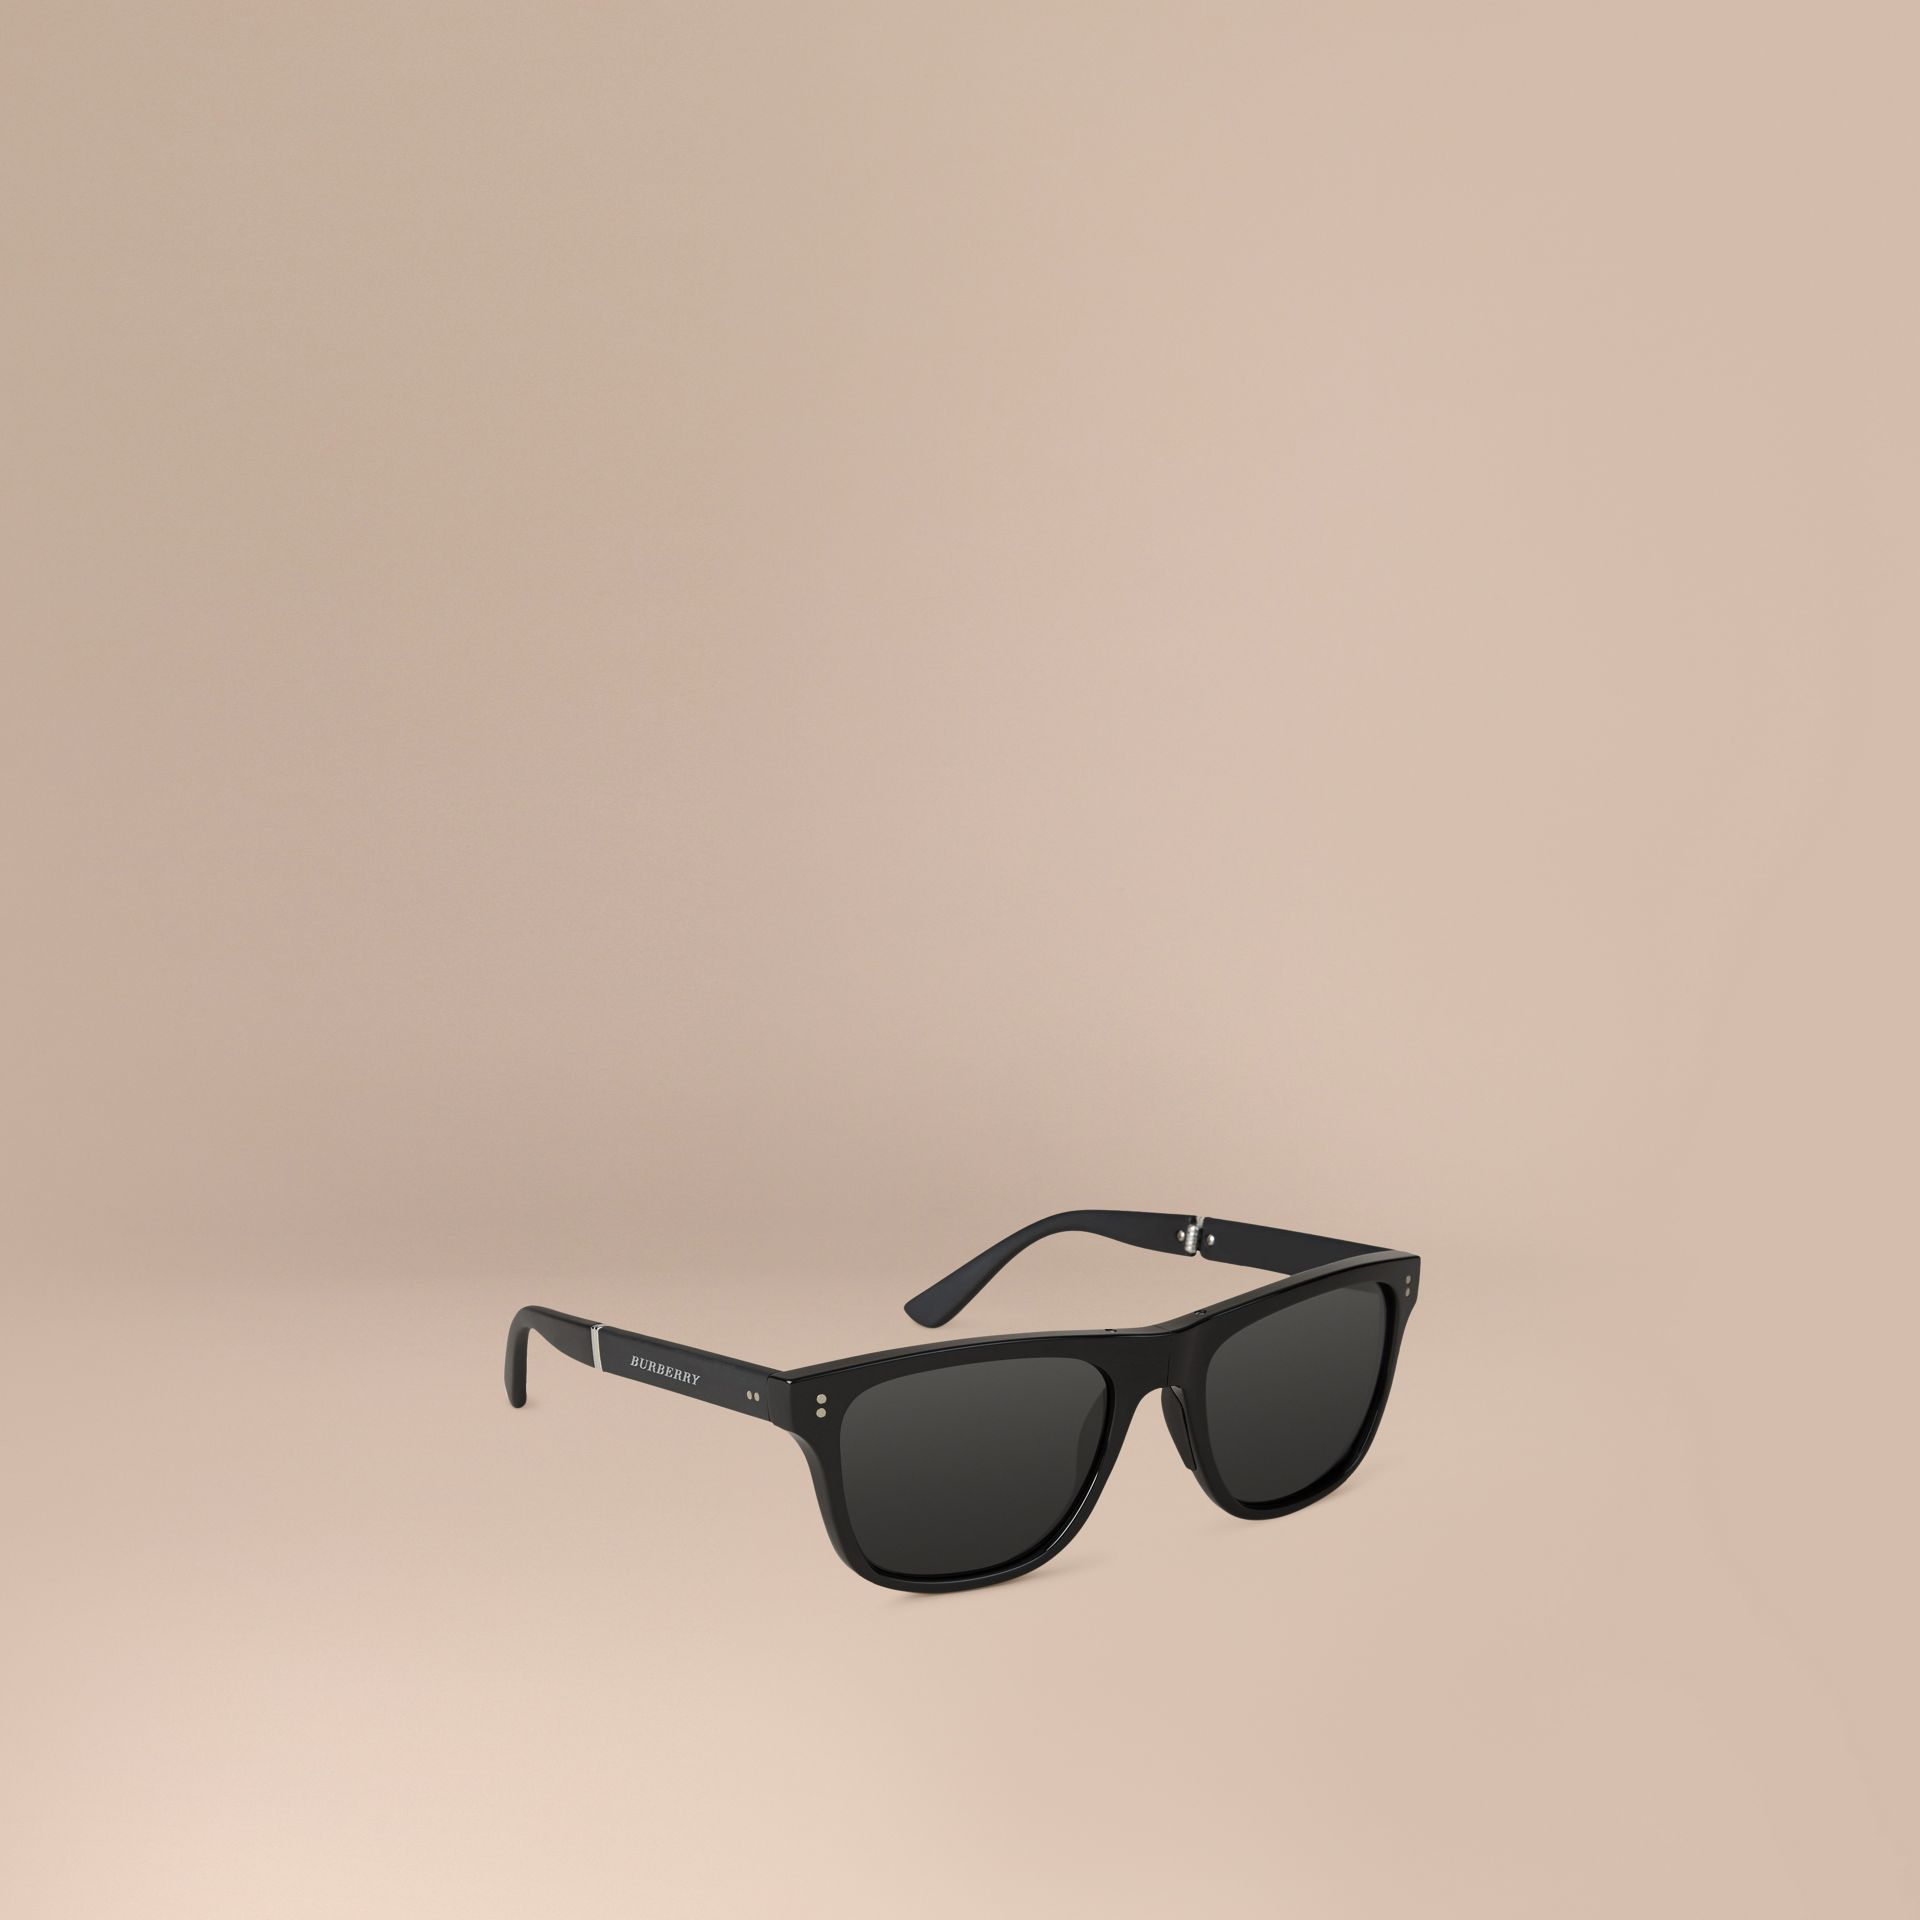 Folding Rectangular Frame Sunglasses in Black - gallery image 1